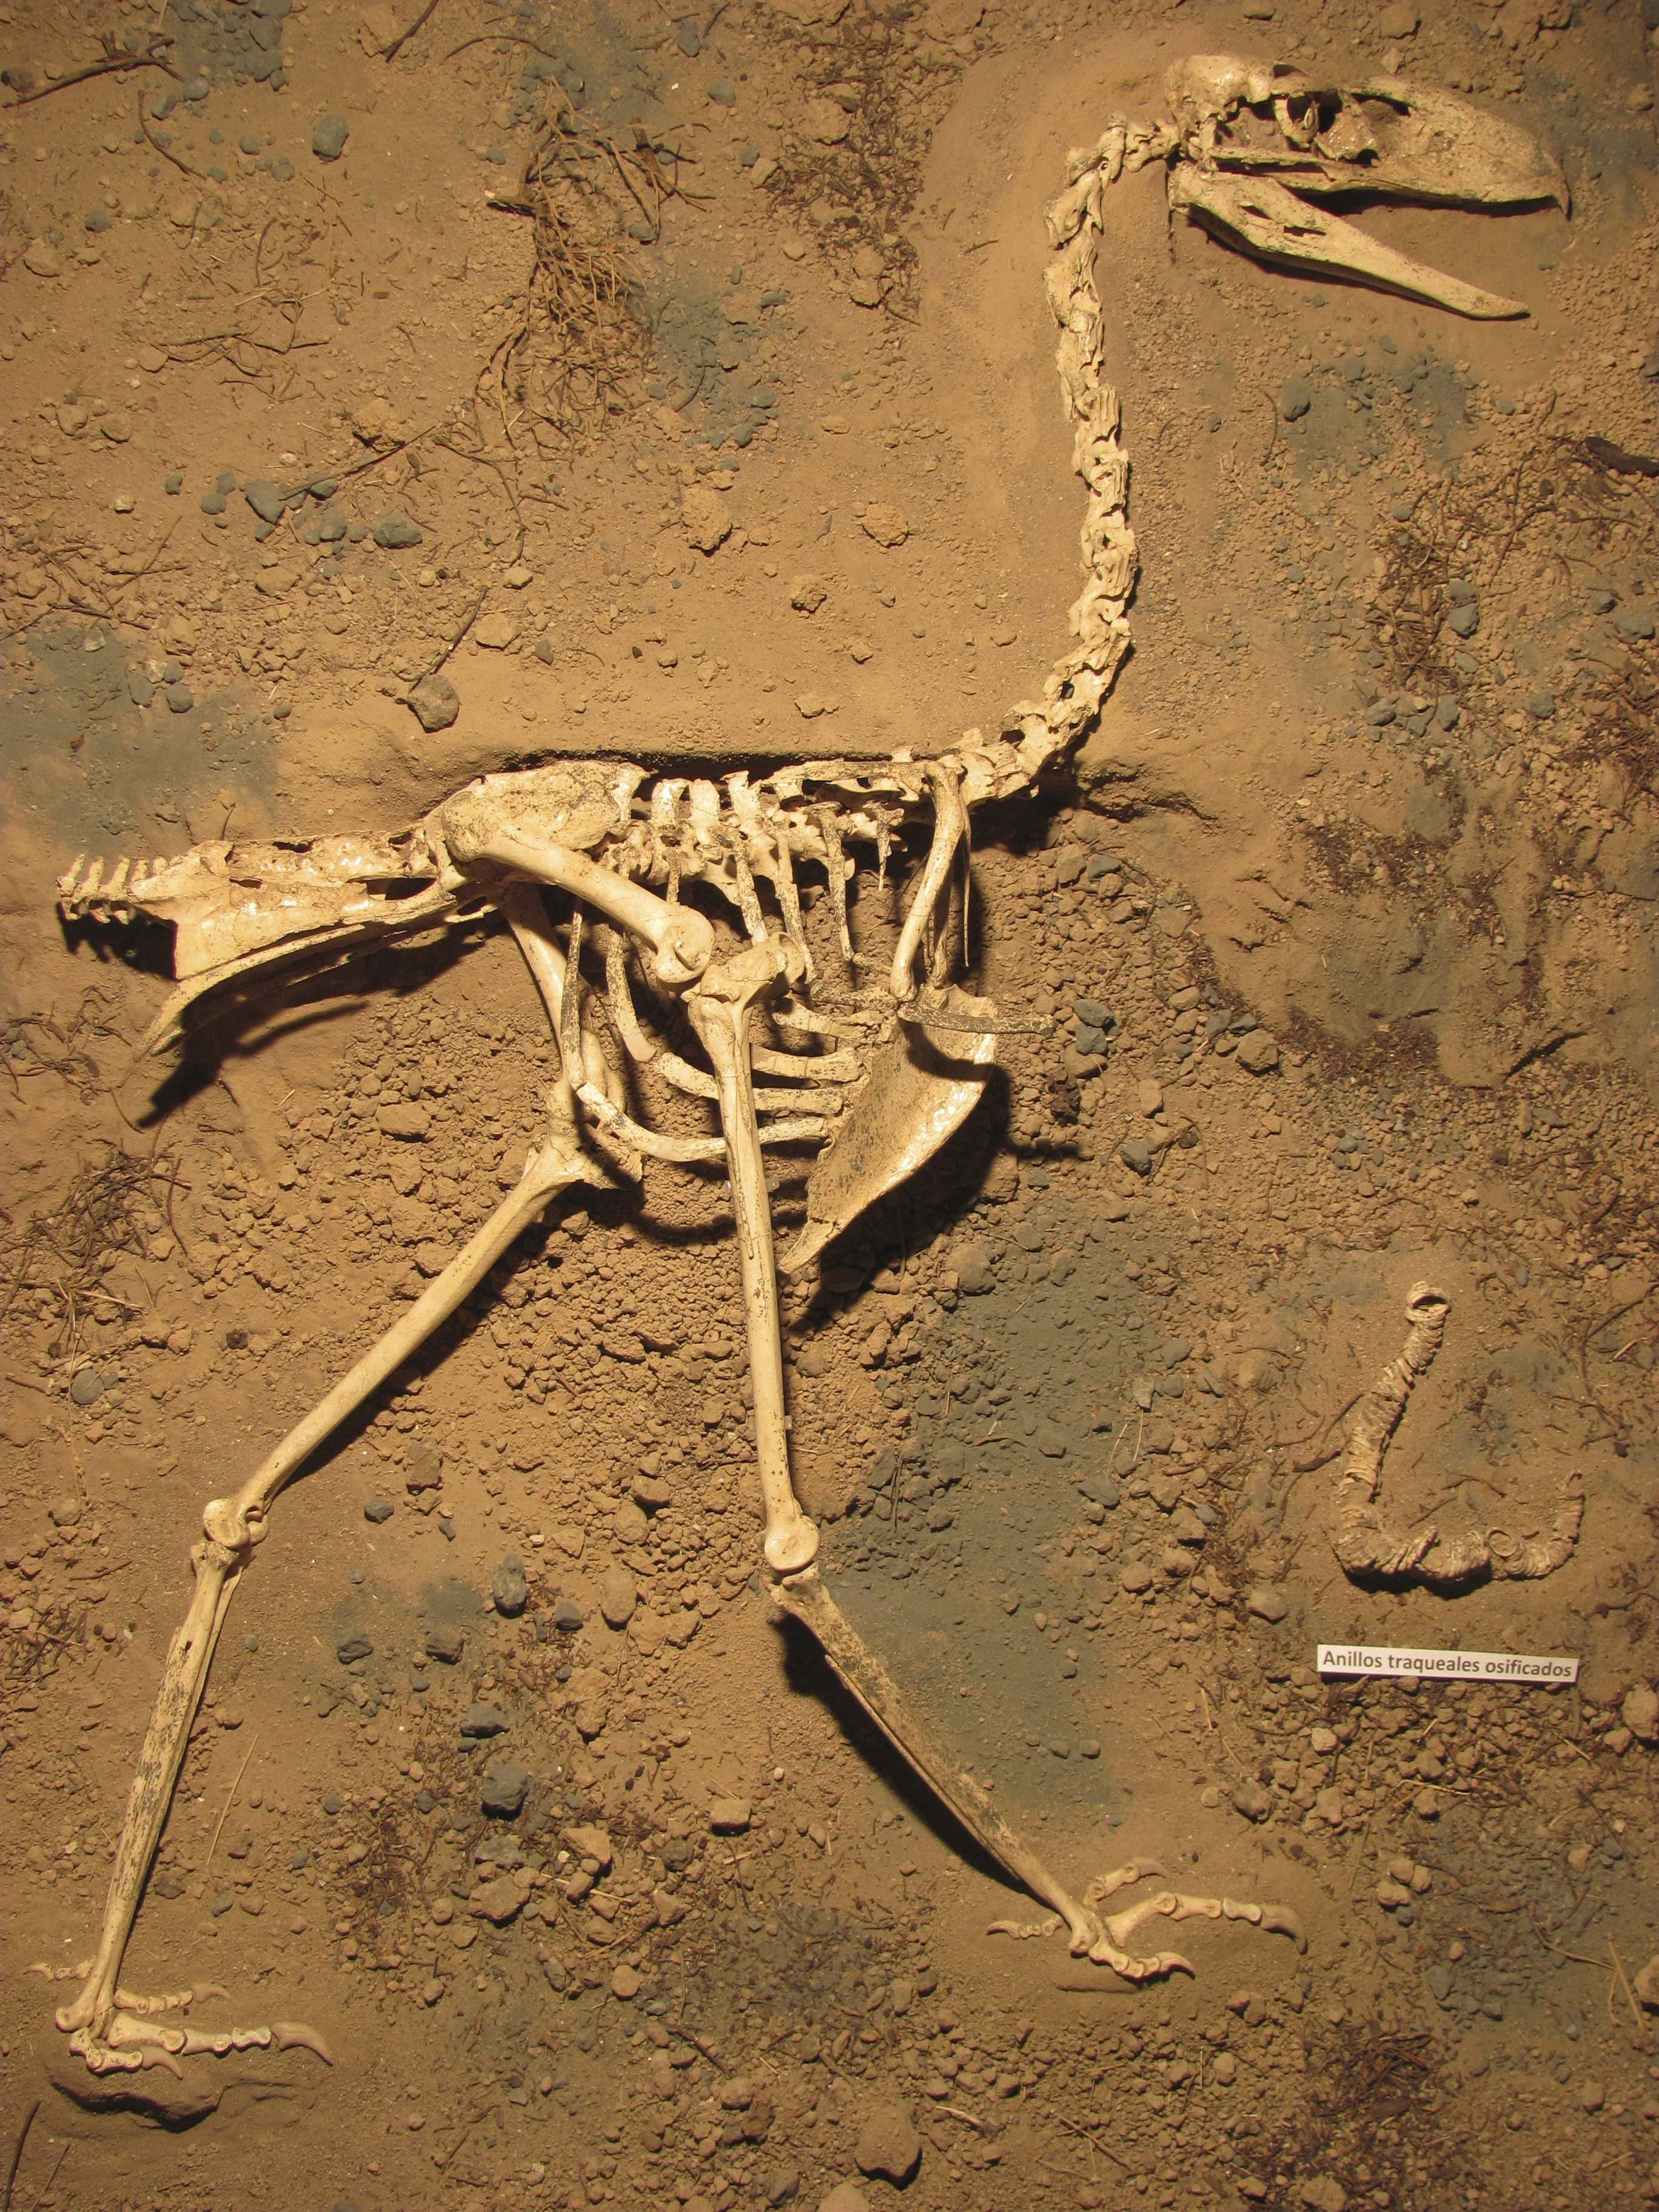 A well-preserved fossil found in Argentina provides new details on Llallawavis scagliai and clues that the terror bird could hear low-frequency sounds.